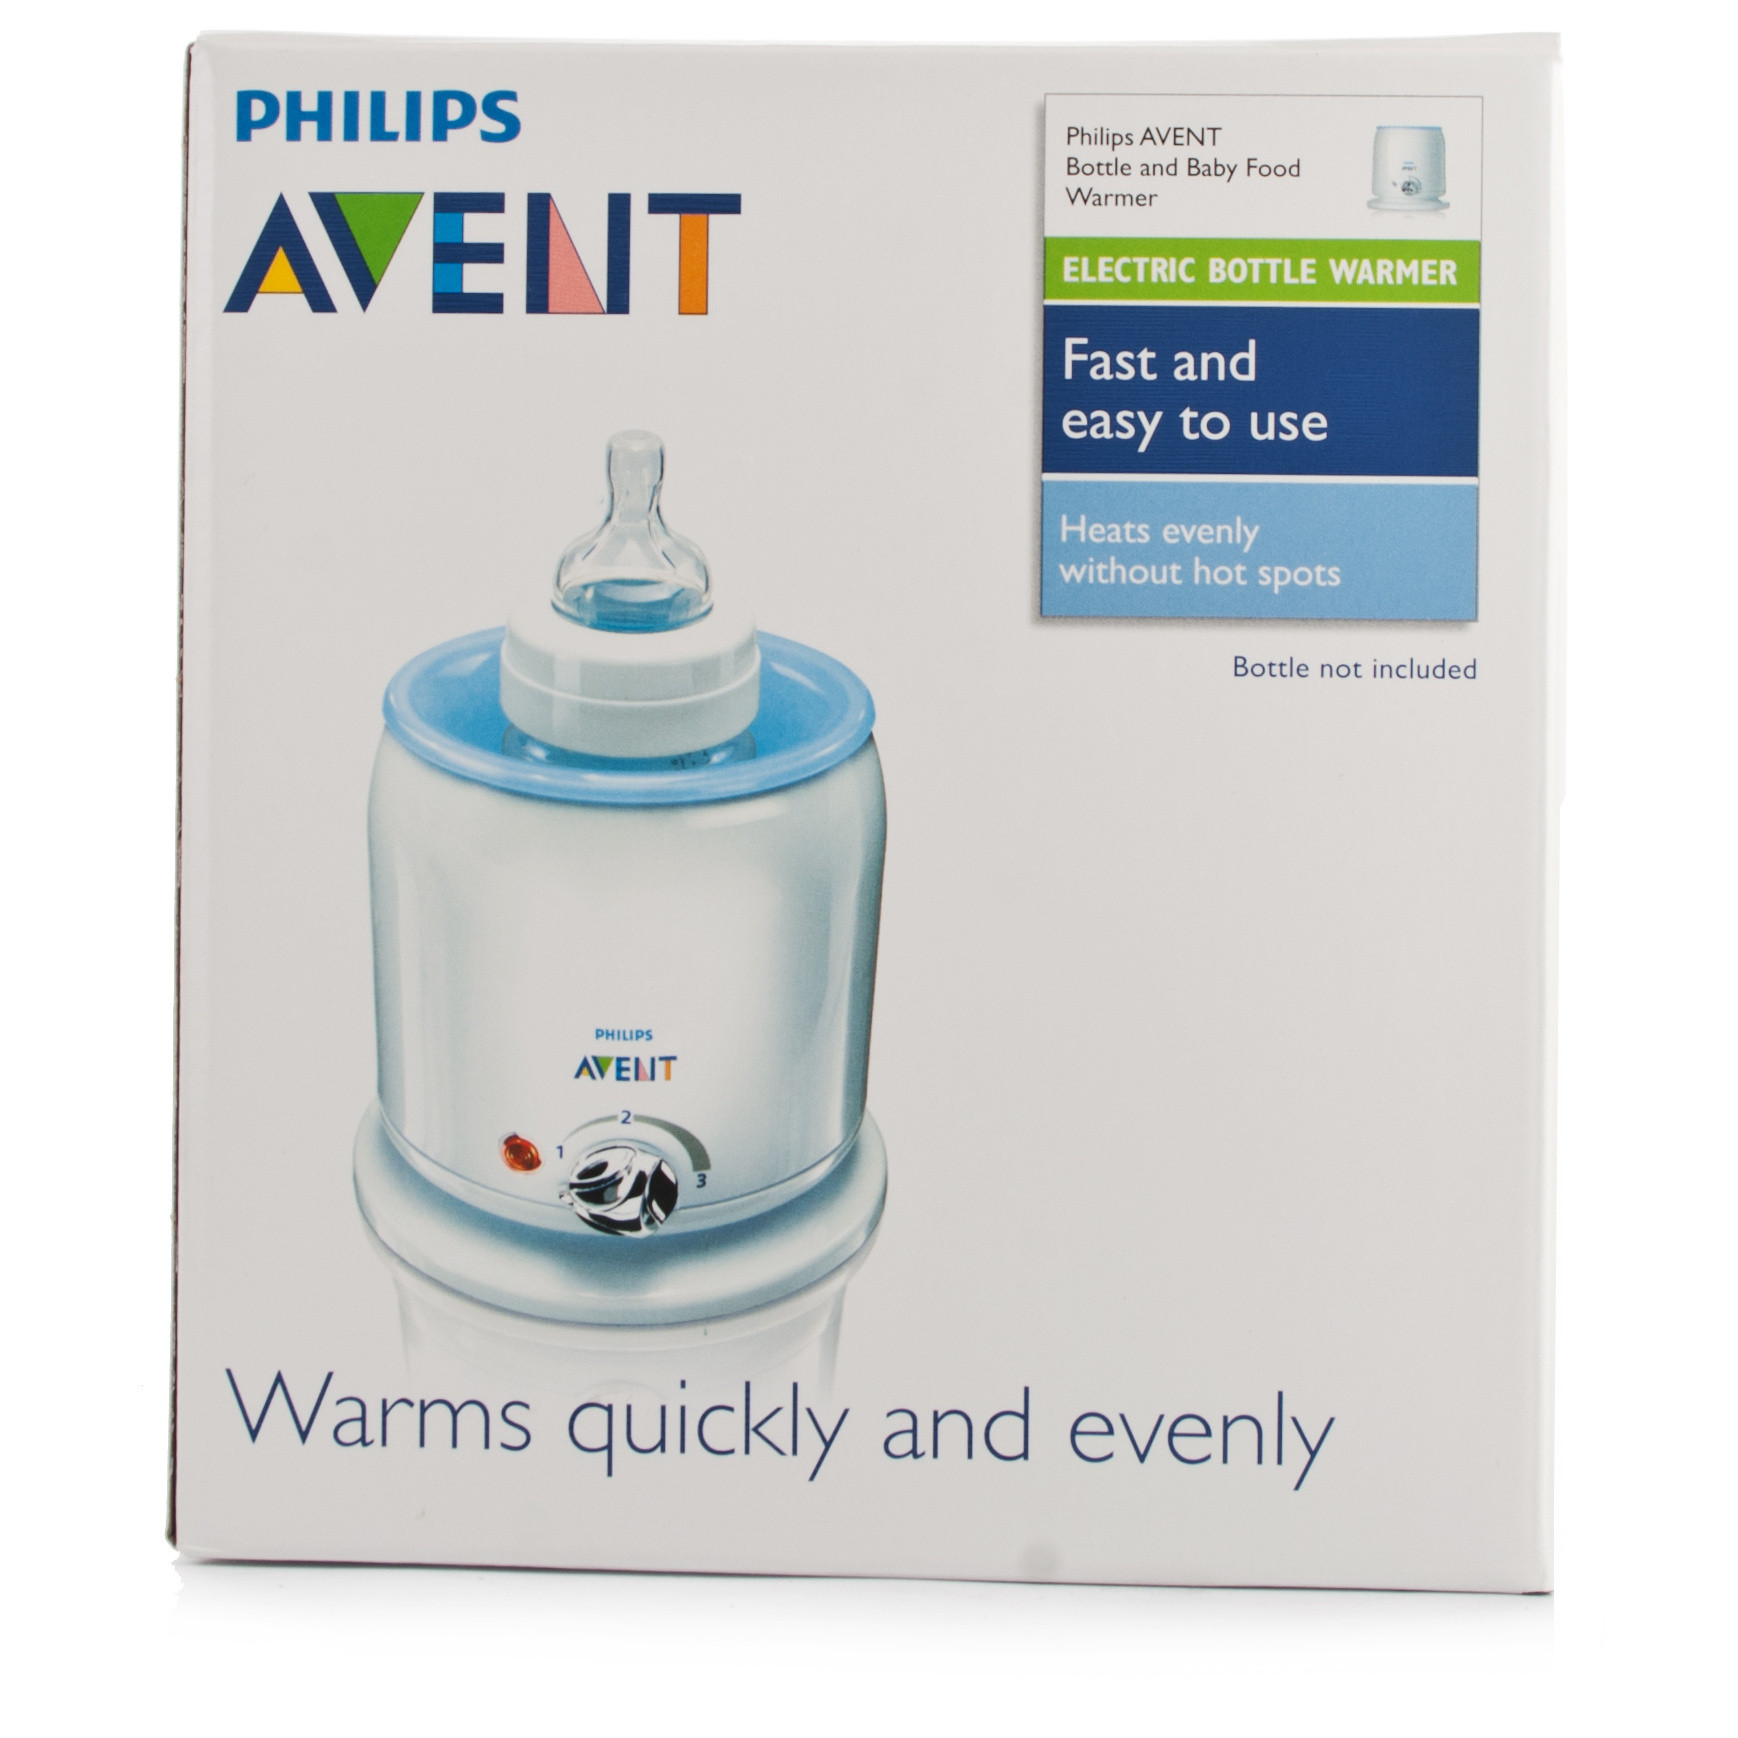 Avent Electric Baby Food and Bottle Warmer